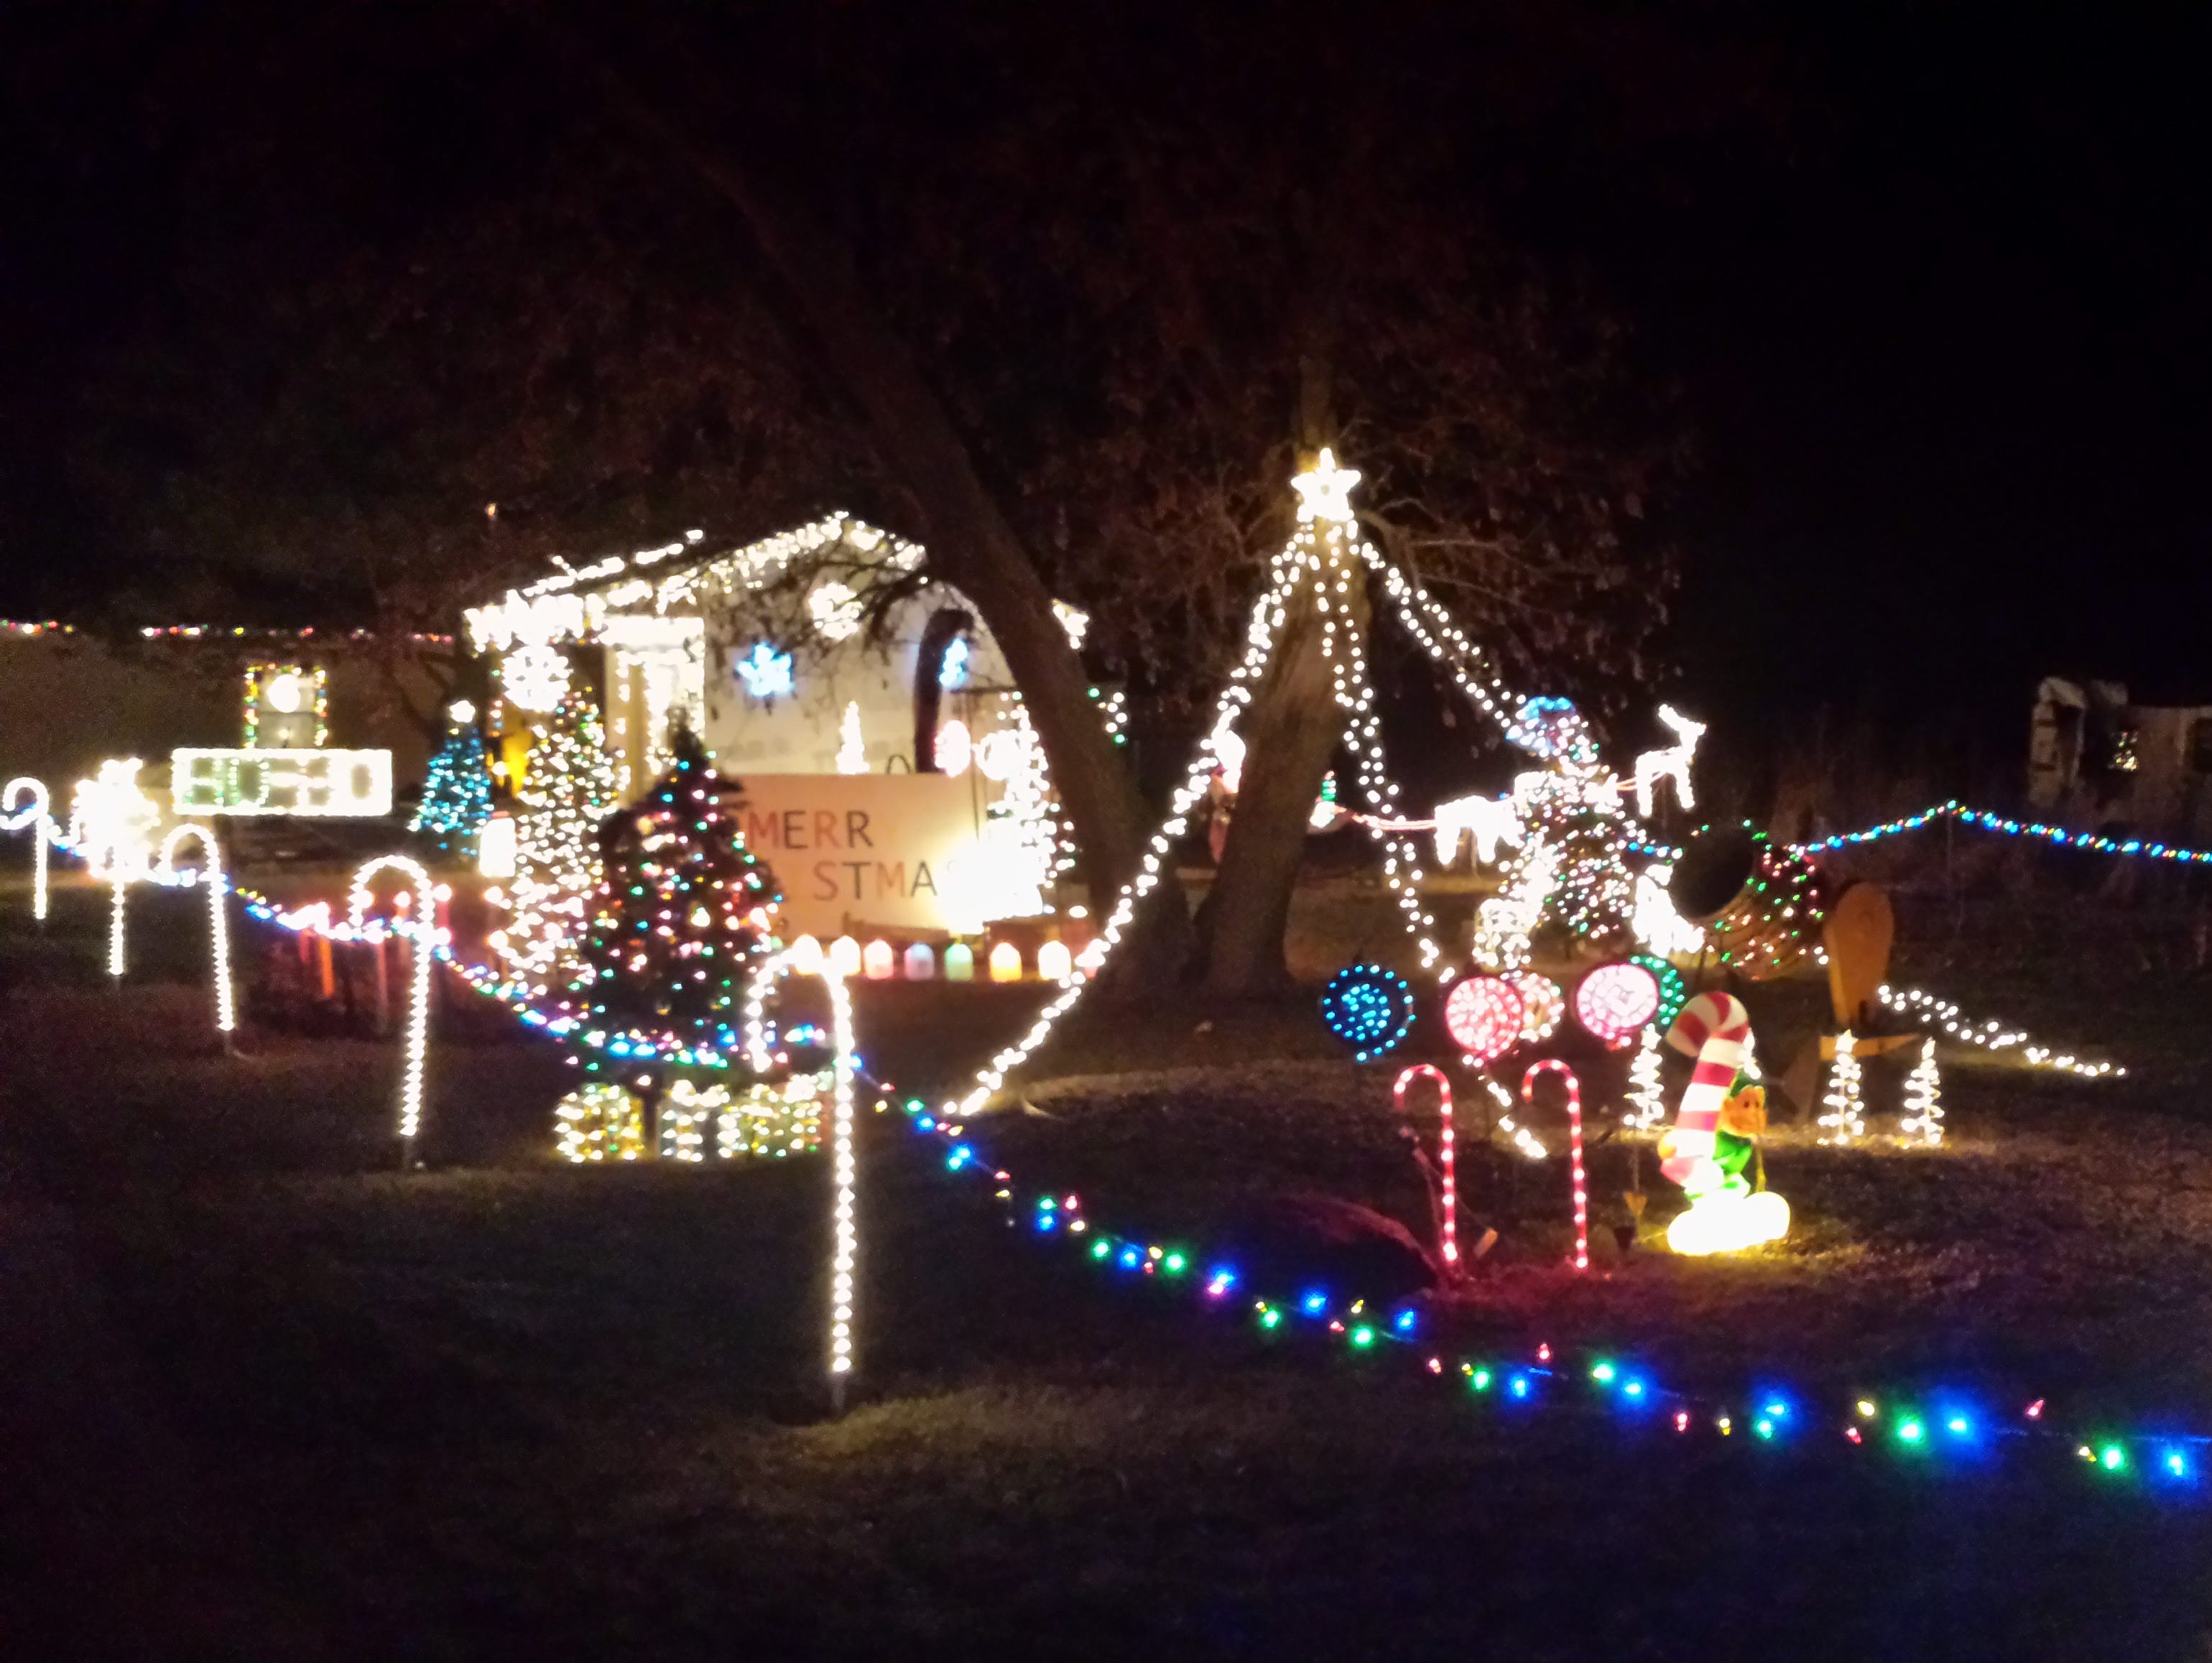 xmas lighting decorations christmas tree home of the milanowski family 1976 county o junction christmas lights displays in central wisconsin you dont want to miss